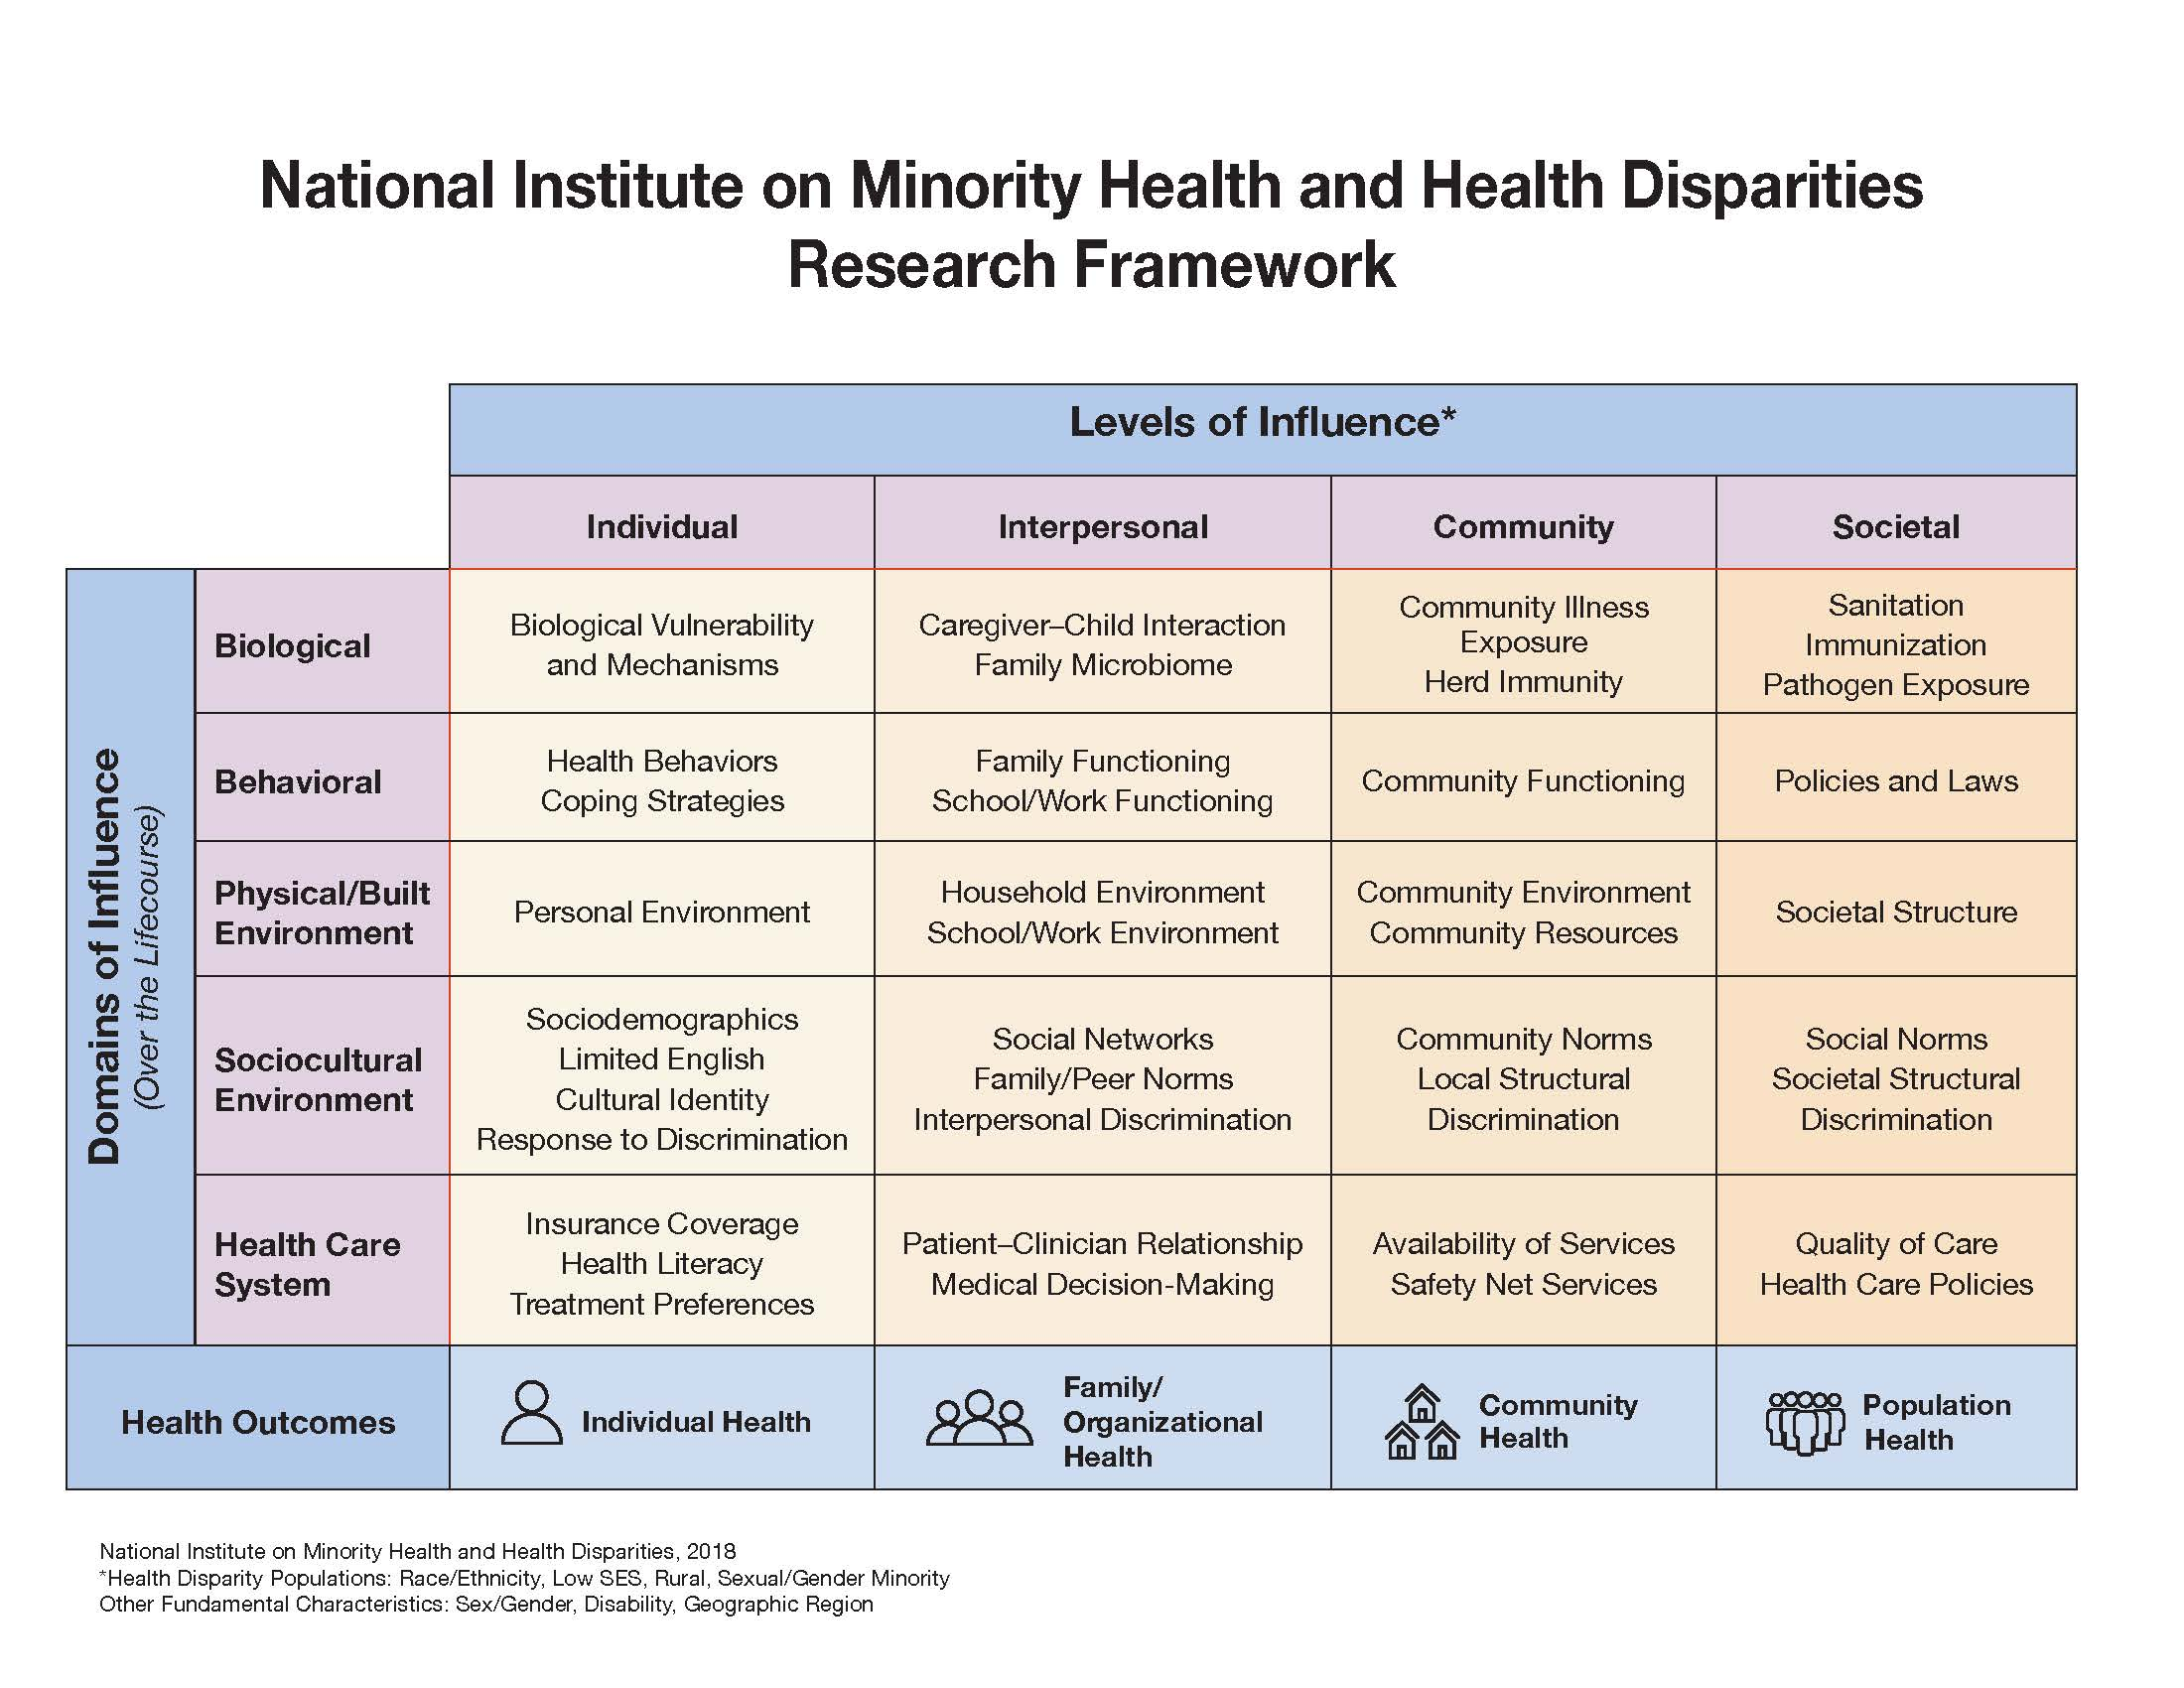 """NIMHD Minority Health and Health Disparities Research Framework. If you would like to read all the details of the cells, download the attached PDF file in the right rail."